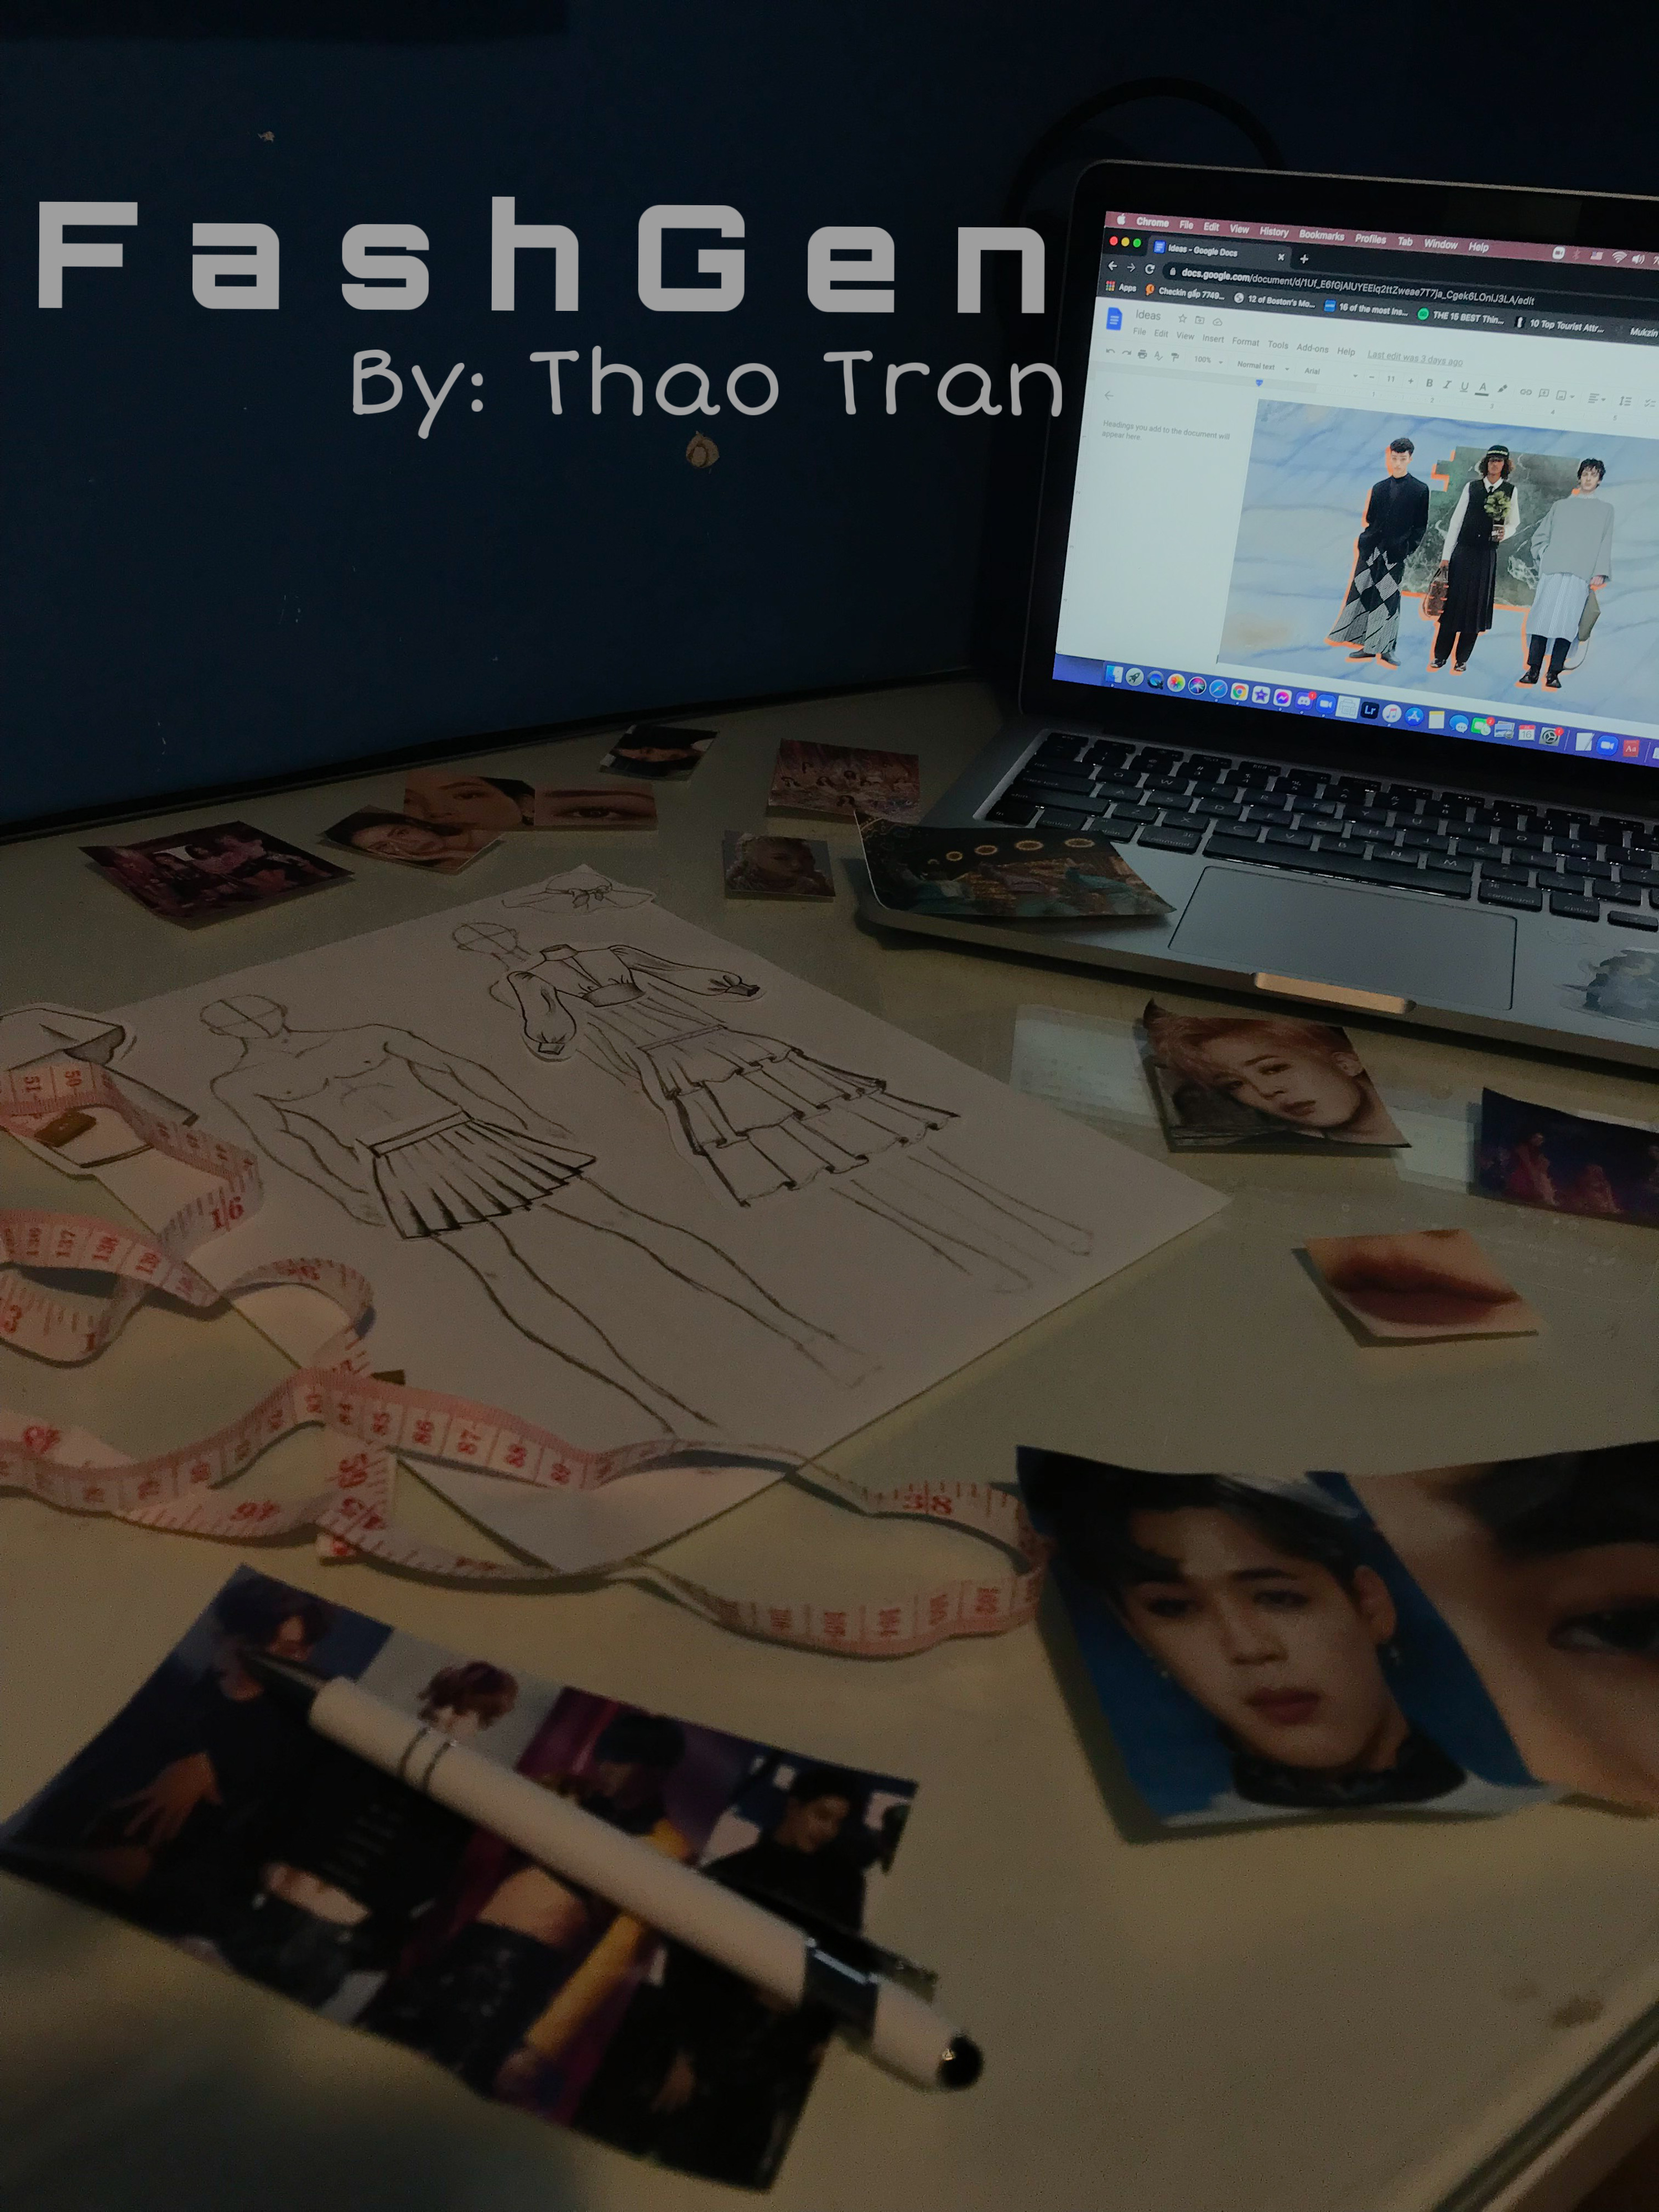 Fashion research in the form of photos and drawings spread out on a desk. Photo and edit by the author.